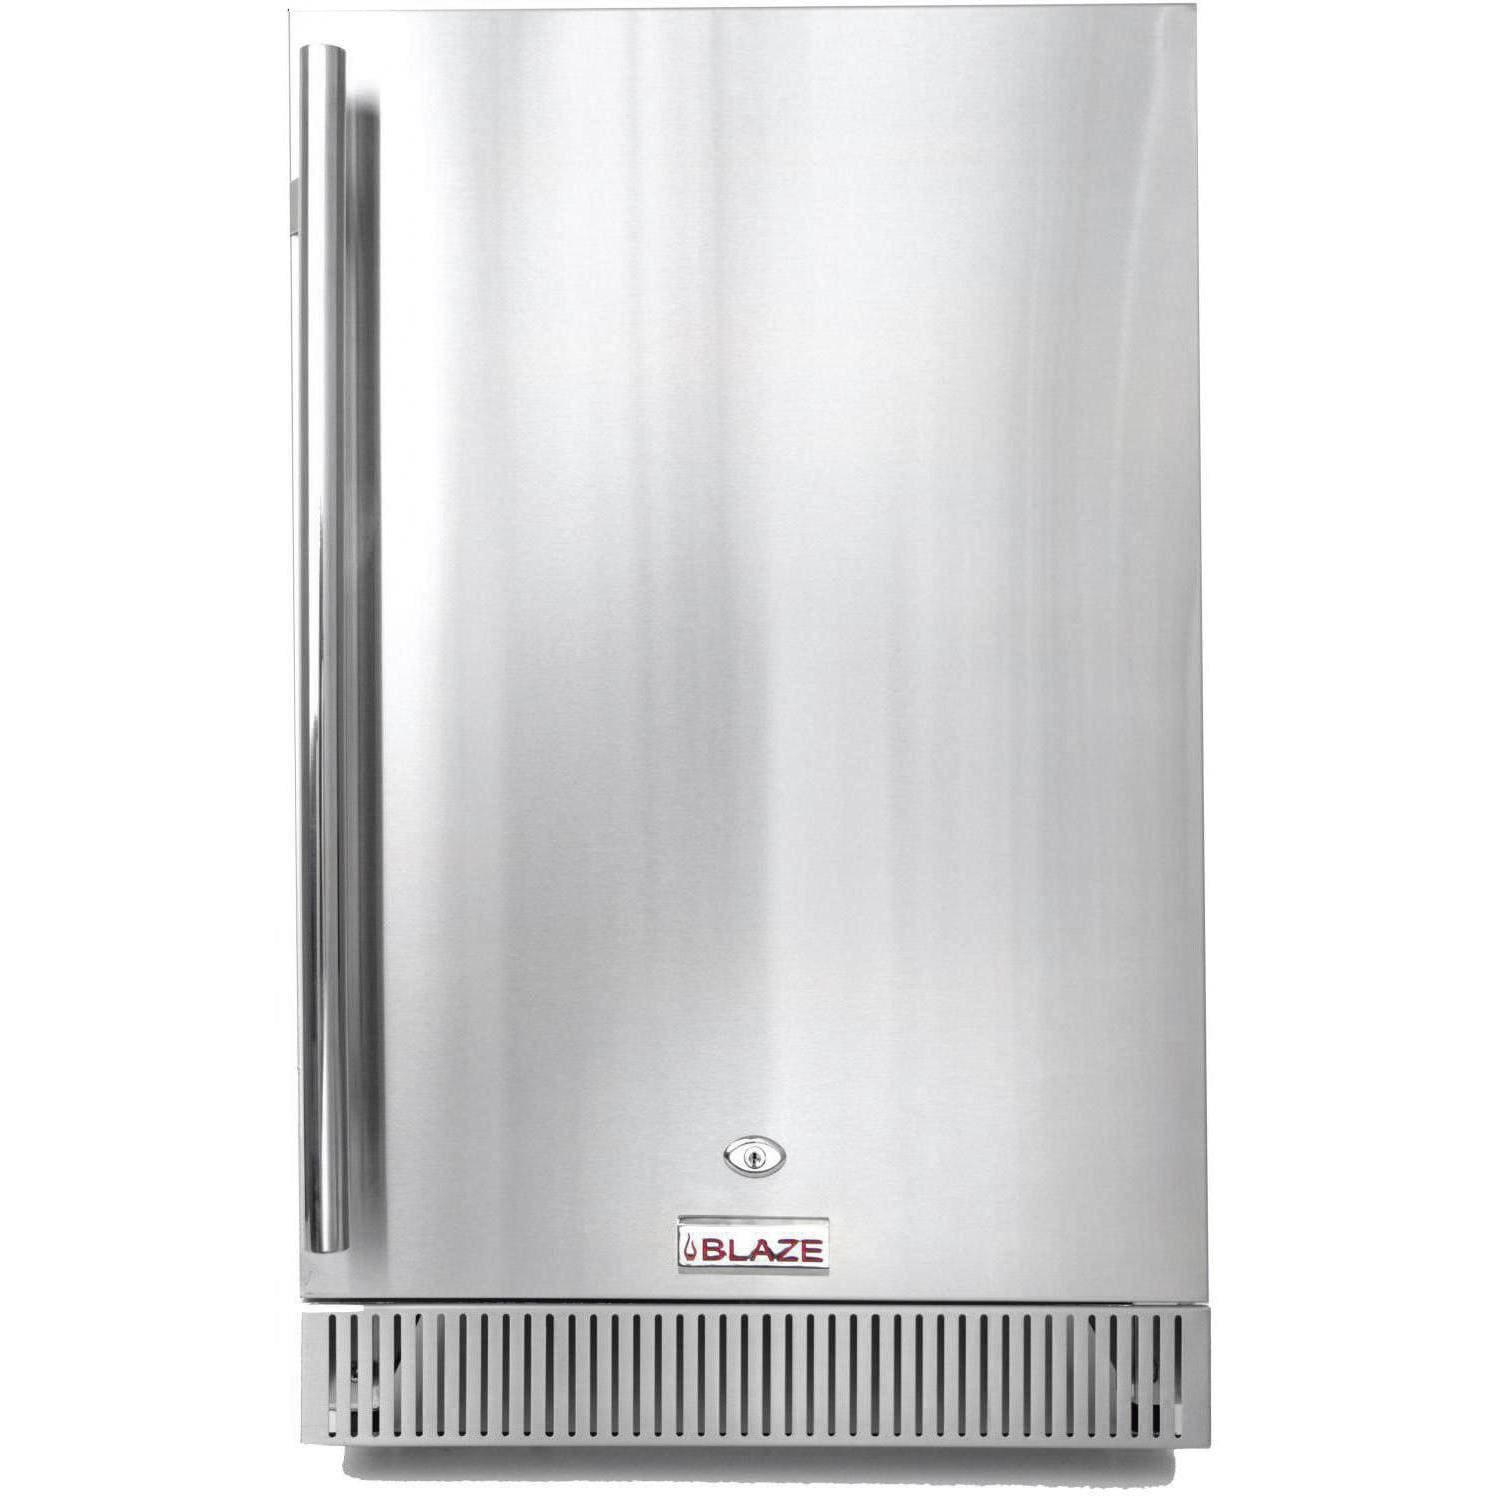 Blaze 20-Inch 4.1 Cu. Ft. Outdoor Rated Compact Refrigerator - BLZ-SSRF-40DH